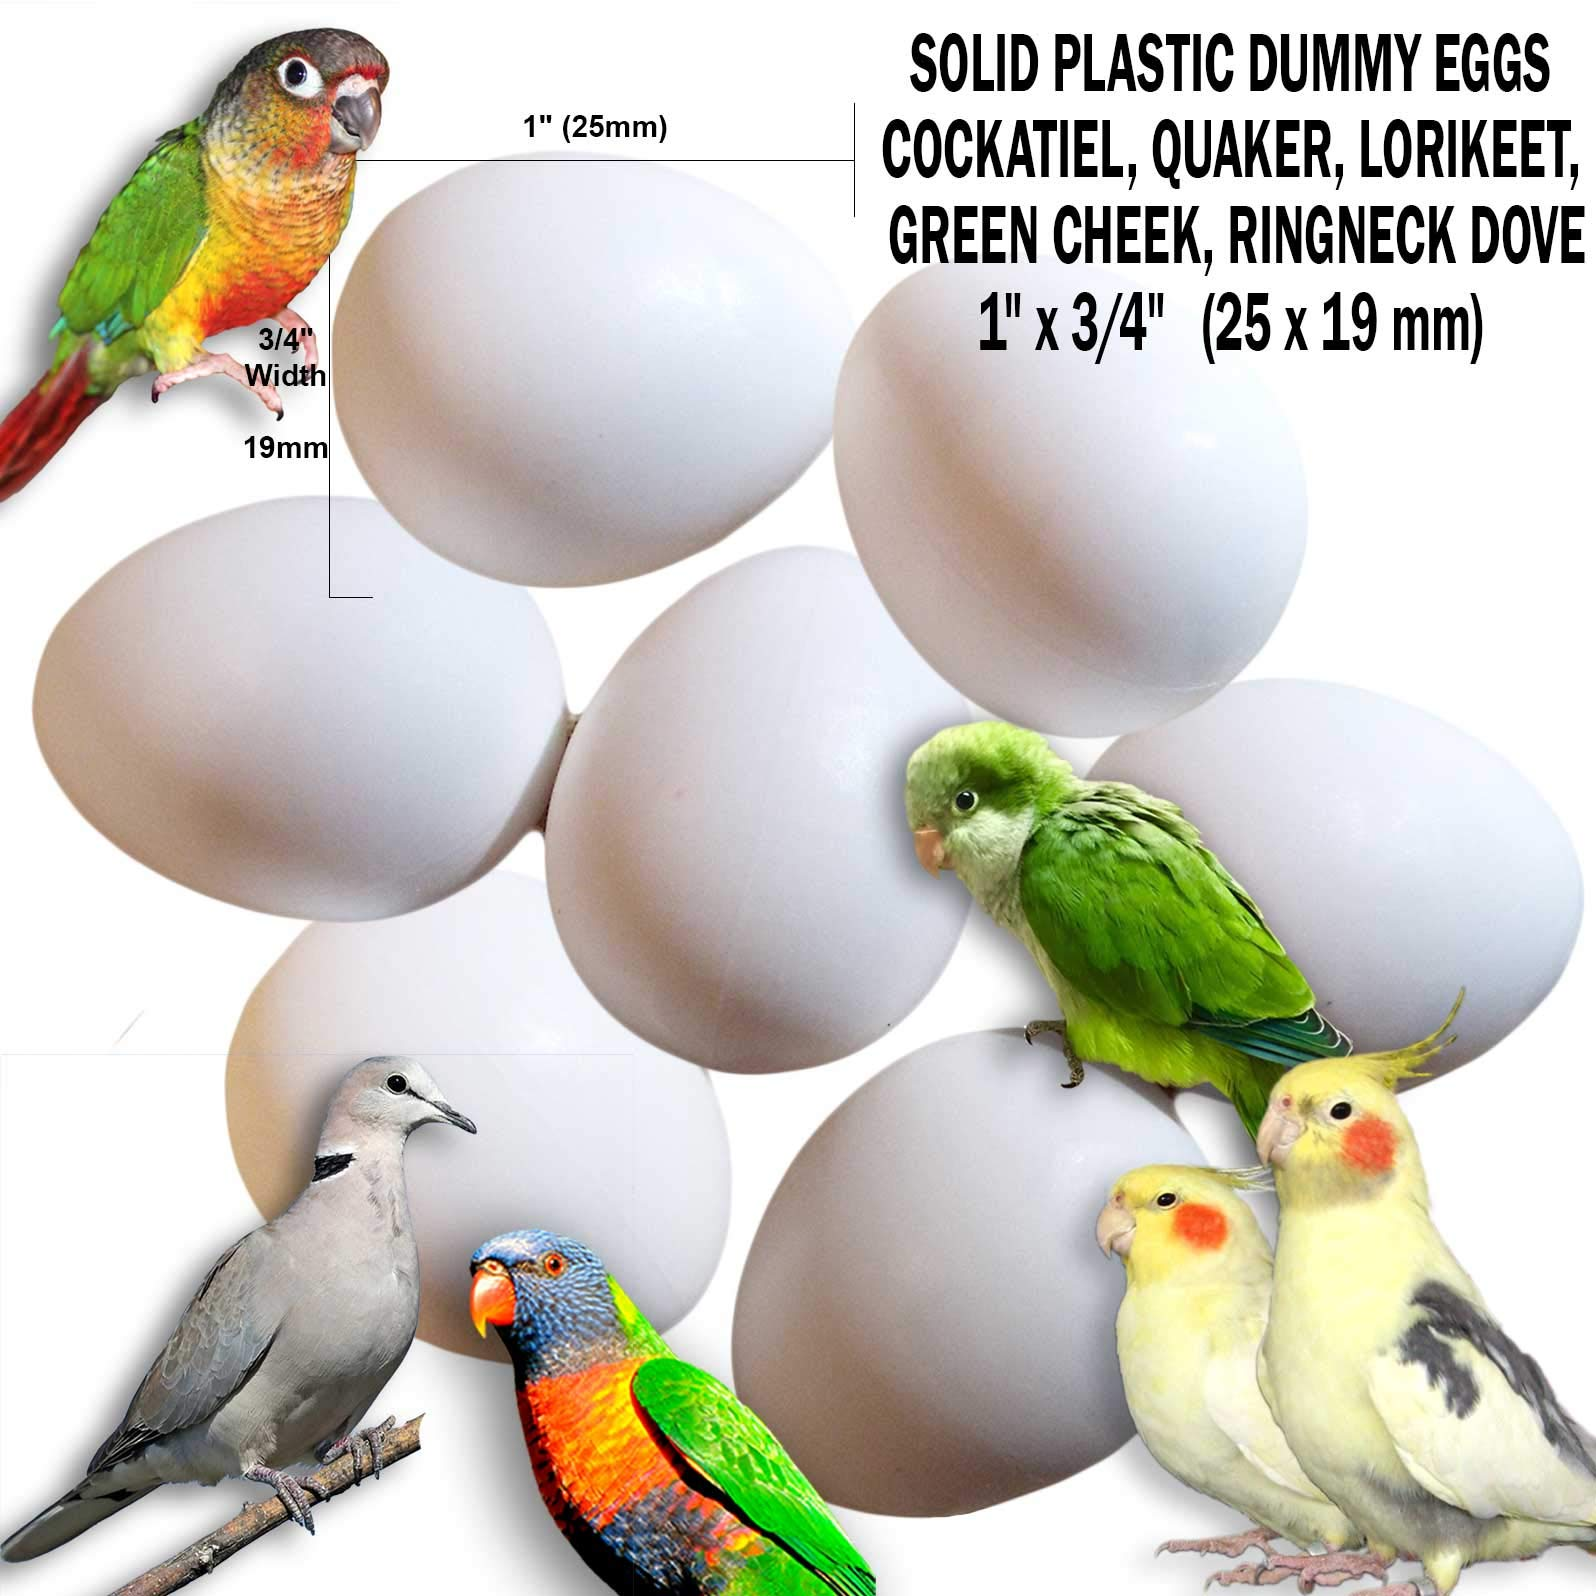 DummyEggs Fake Bird Eggs Stop Laying! Set of 21: Cockatiel, Quaker Parrot, Green Cheek, Lorikeet Ringneck Dove. White Solid Plastic Realistic 1'' x 3/4'' 25 x 19 mm (Set of 21) by DummyEggs